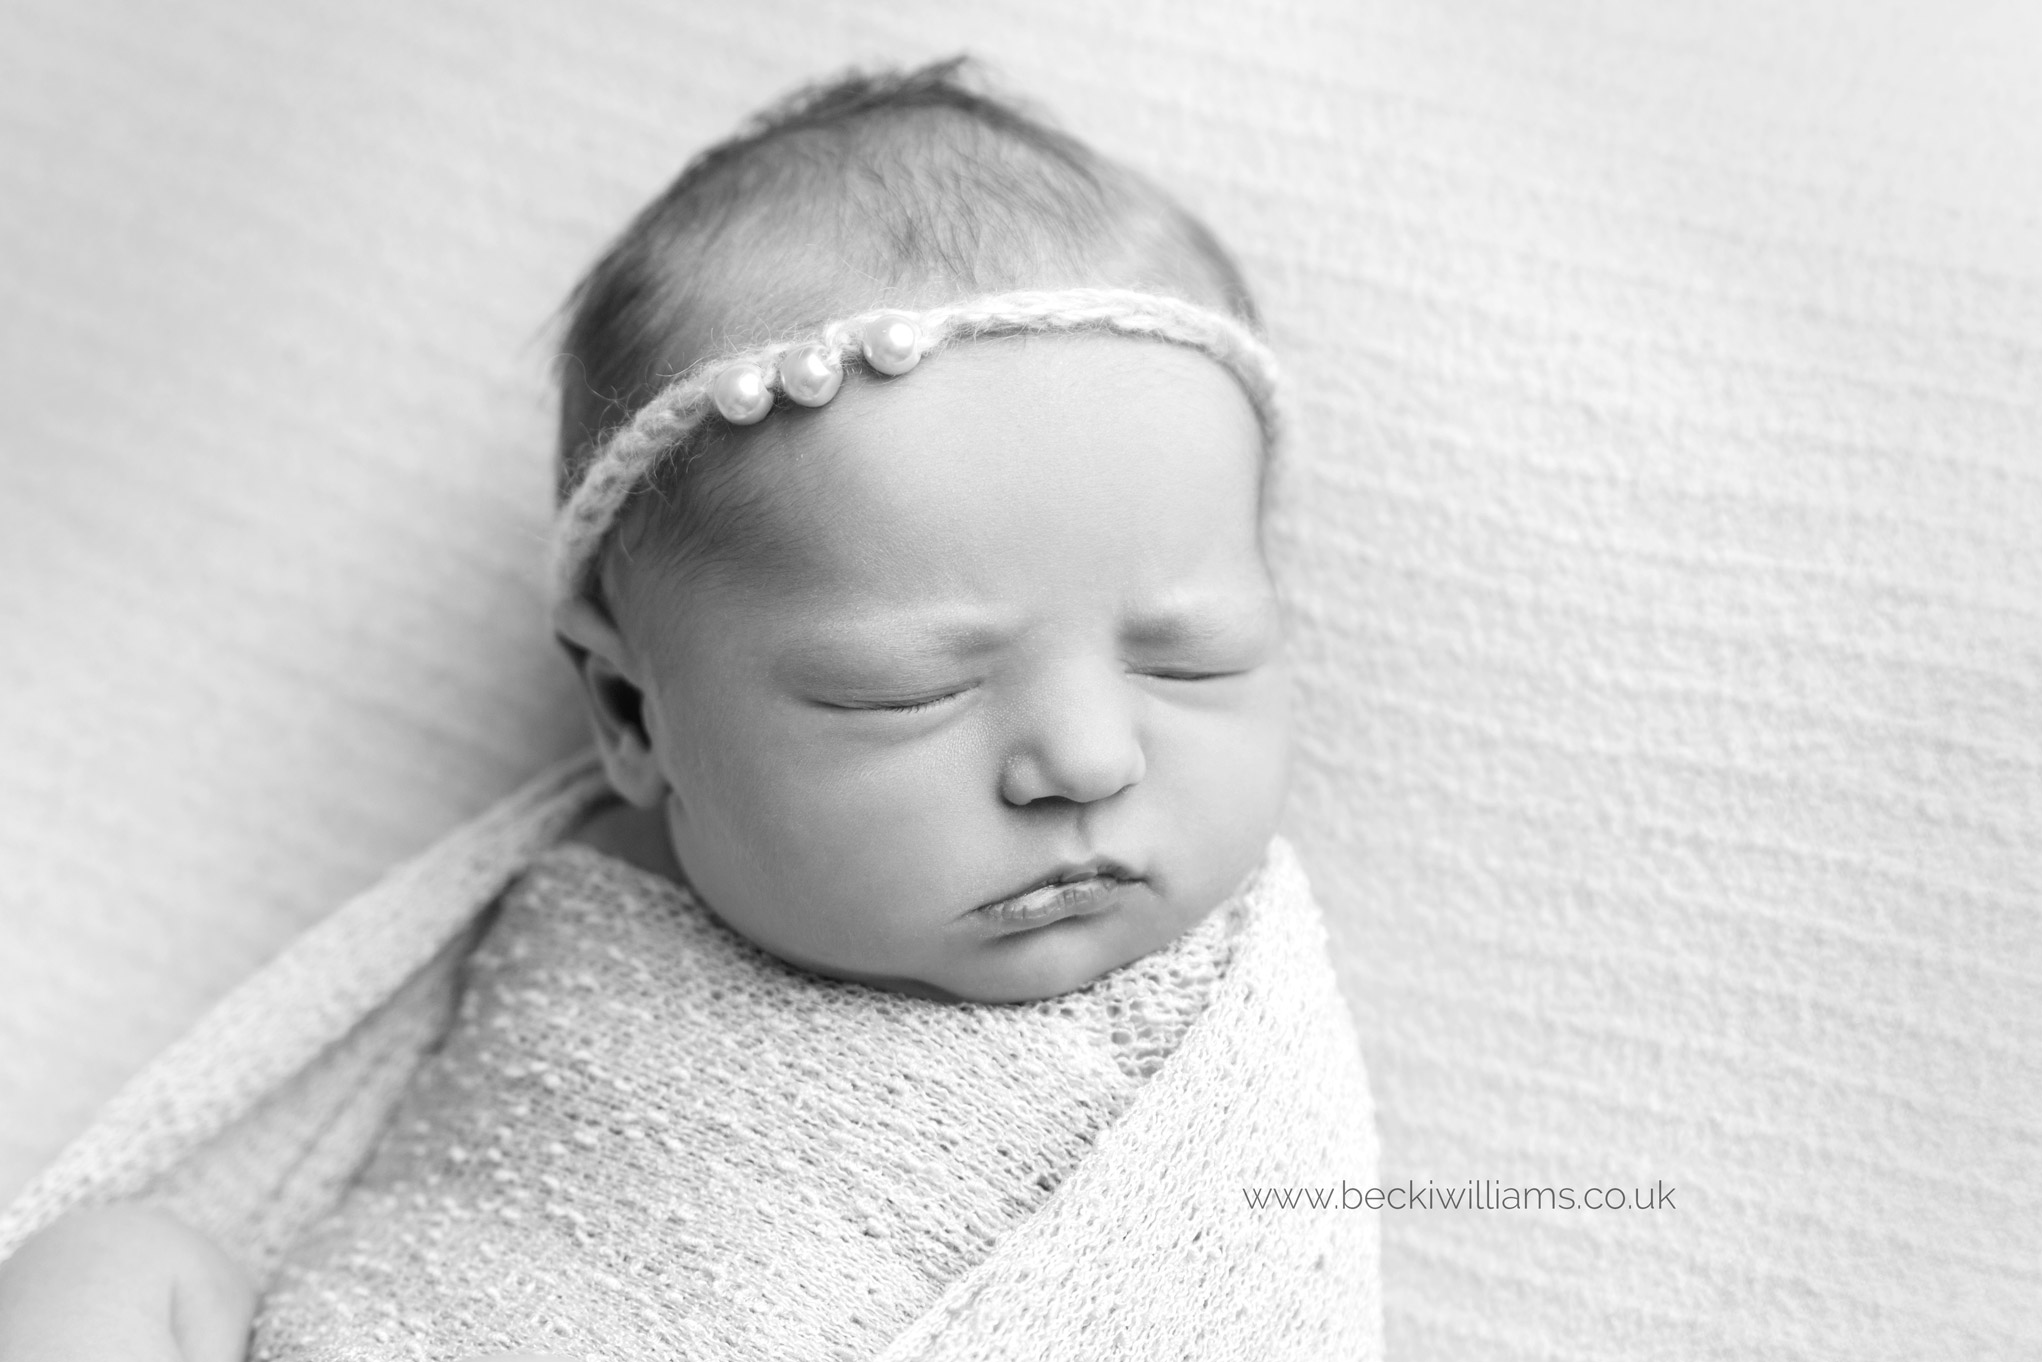 wrapped, sleeping newborn baby in black and white